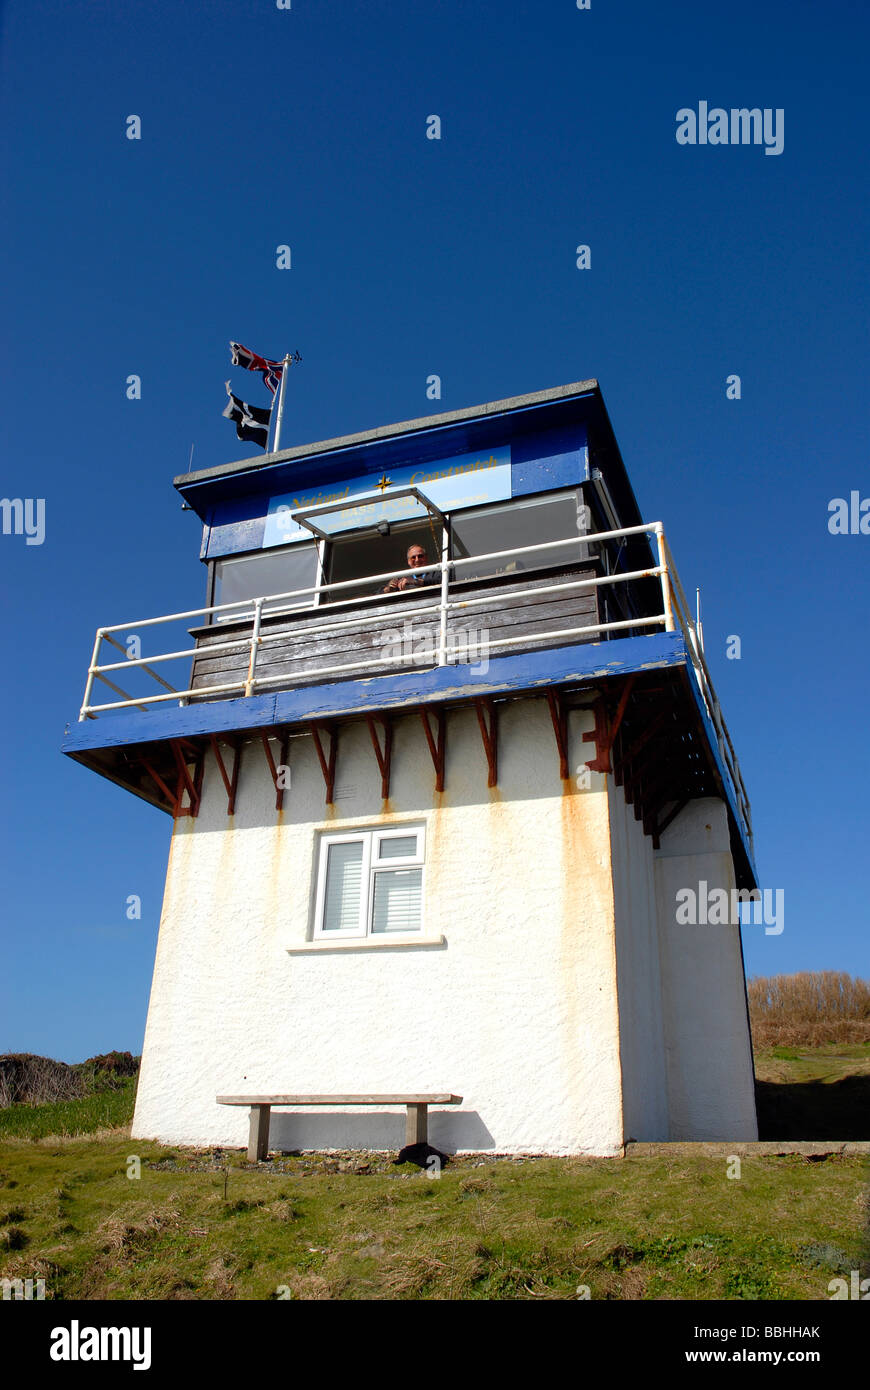 National Coastwatch Institution station at 'The Lizard' Cornwall, Britain, UK - Stock Image